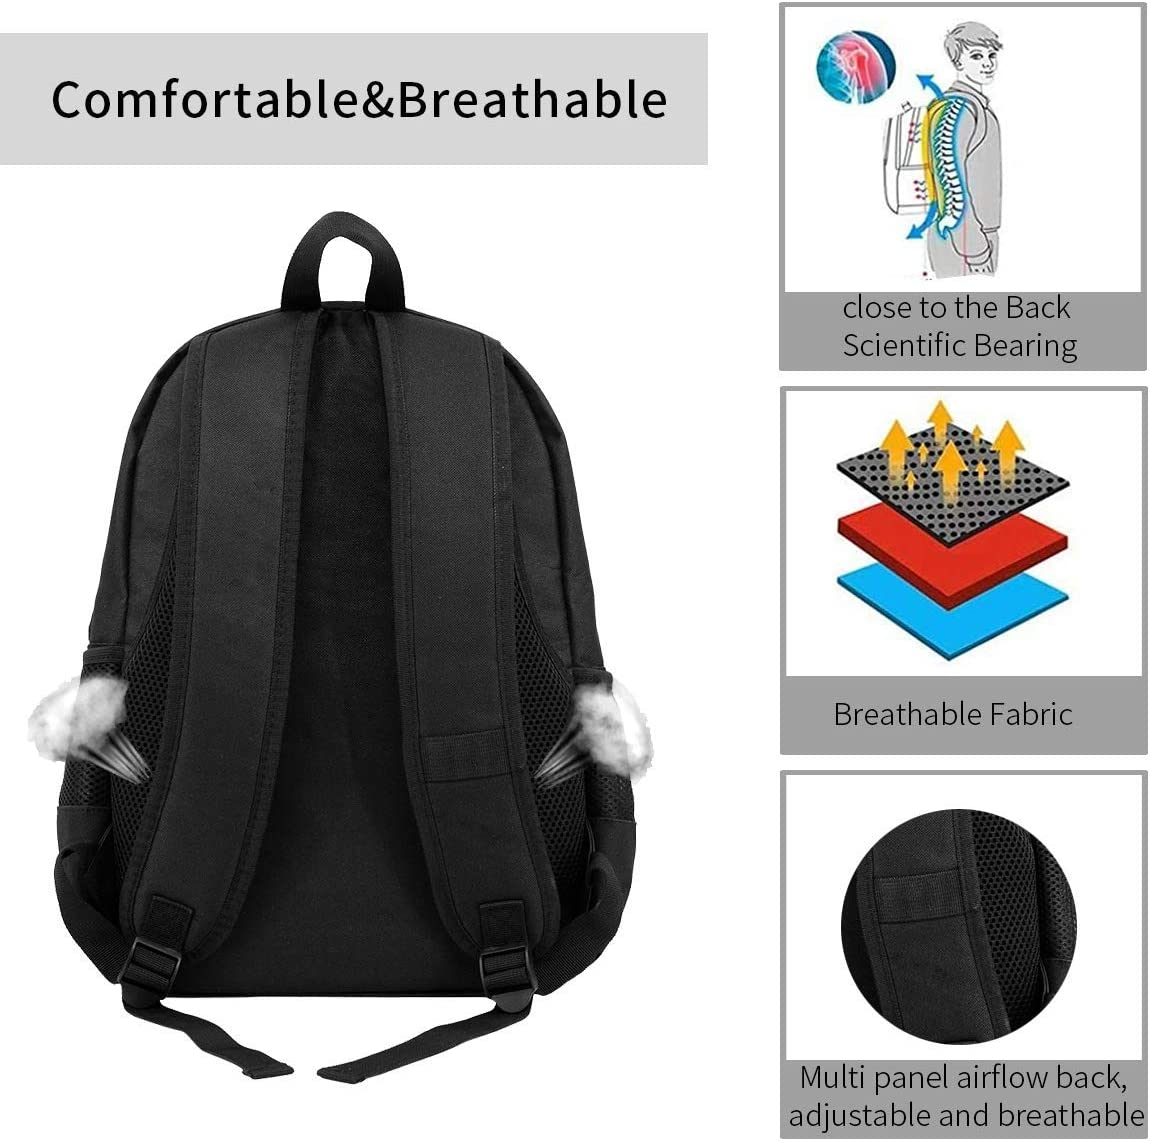 Coffee Time Backpack Laptop College Backpack Durable Laptops Backpack College Computer Bag for Women and Men Fits 15 Inch Laptop